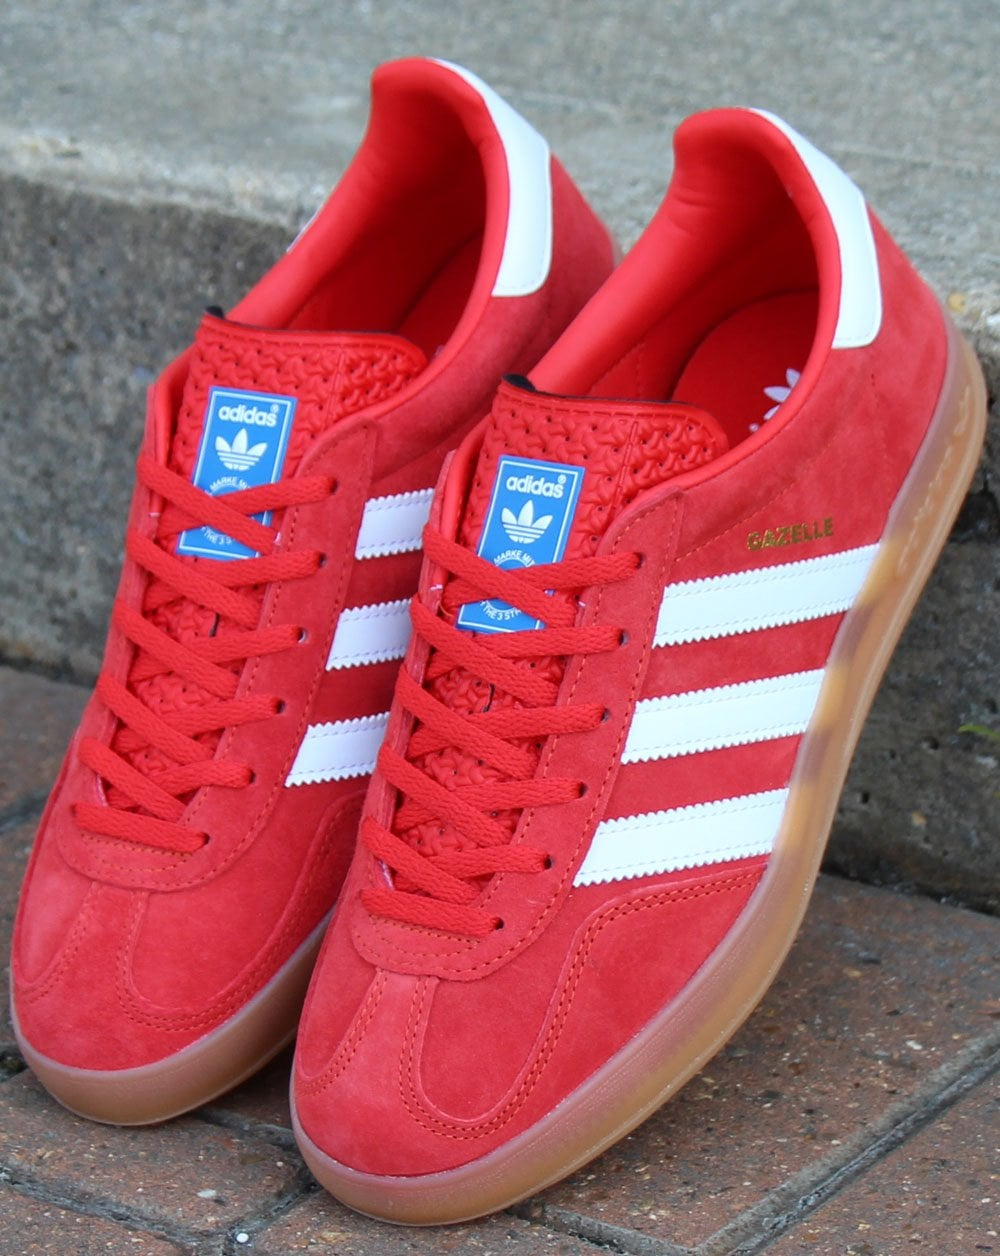 Adidas Gazelle Indoor Trainers Red/White